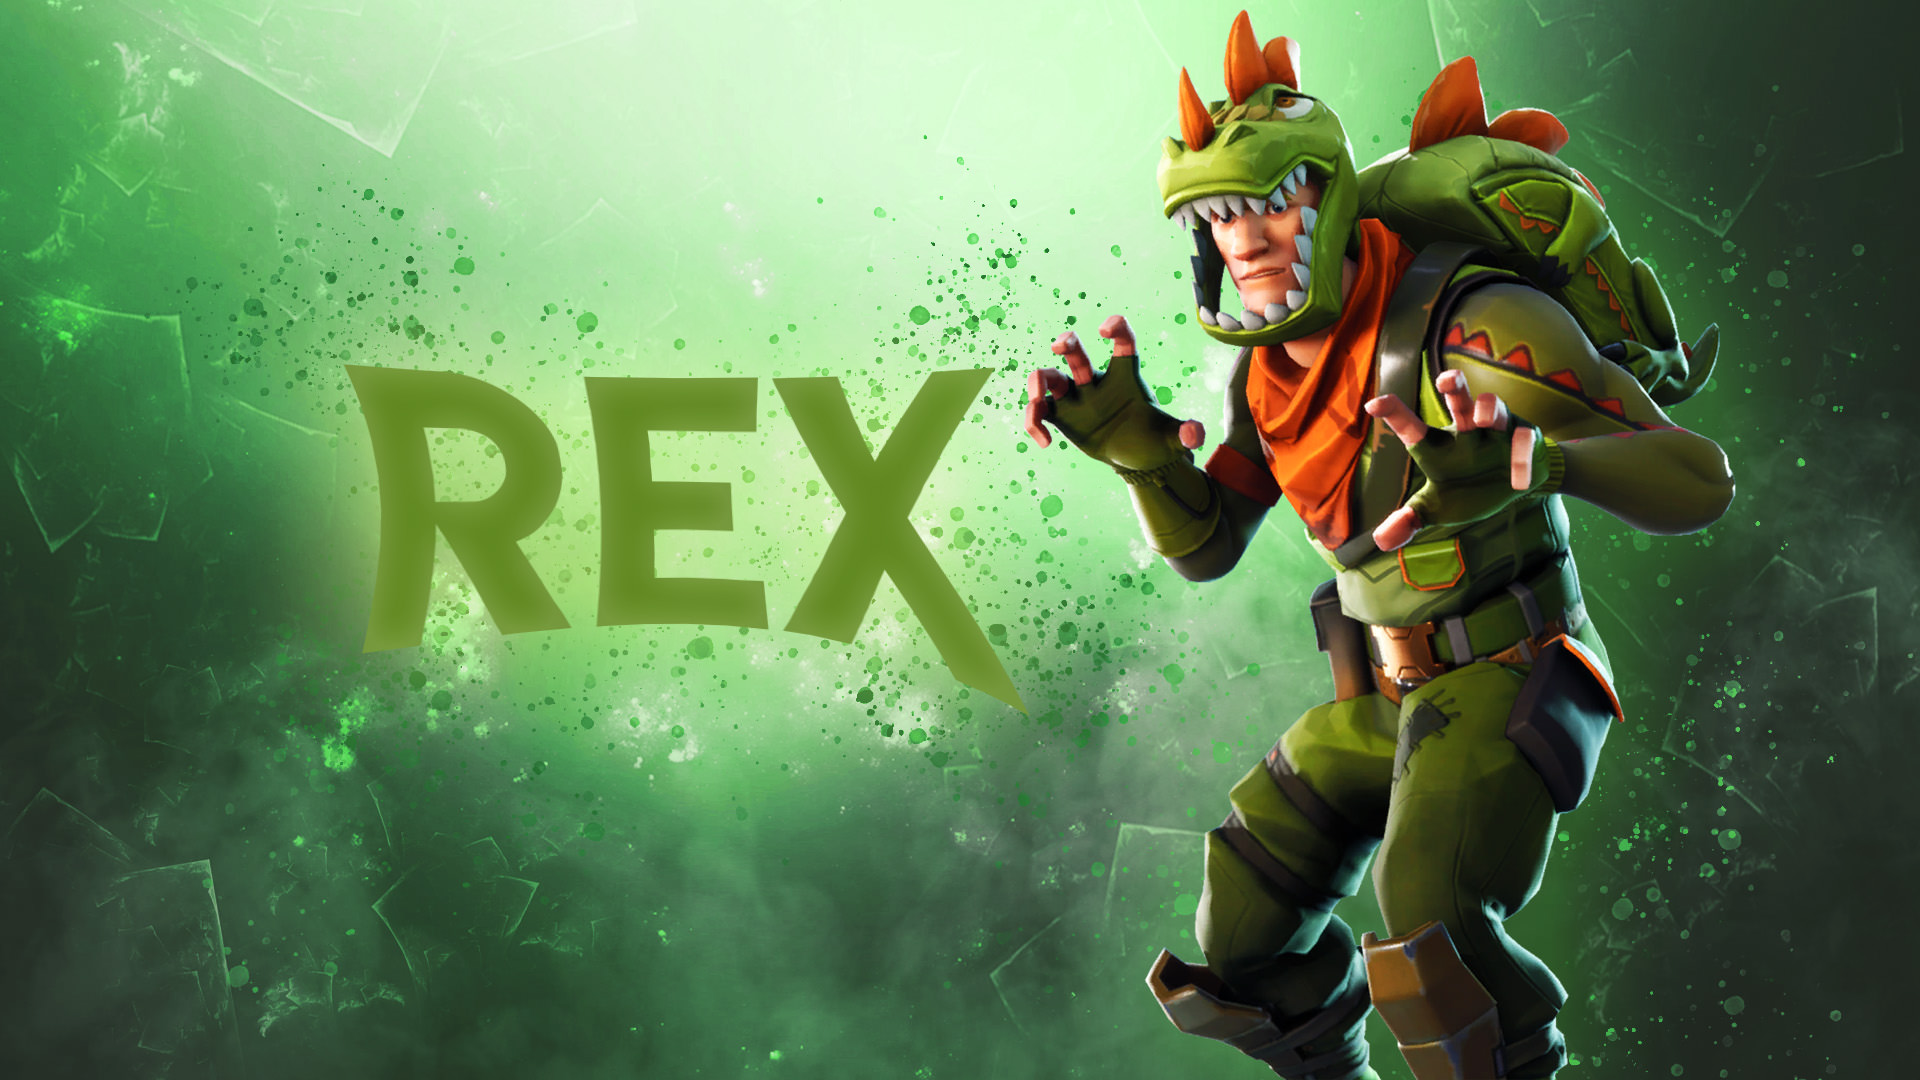 fortnite rex wallpaper hd 64808